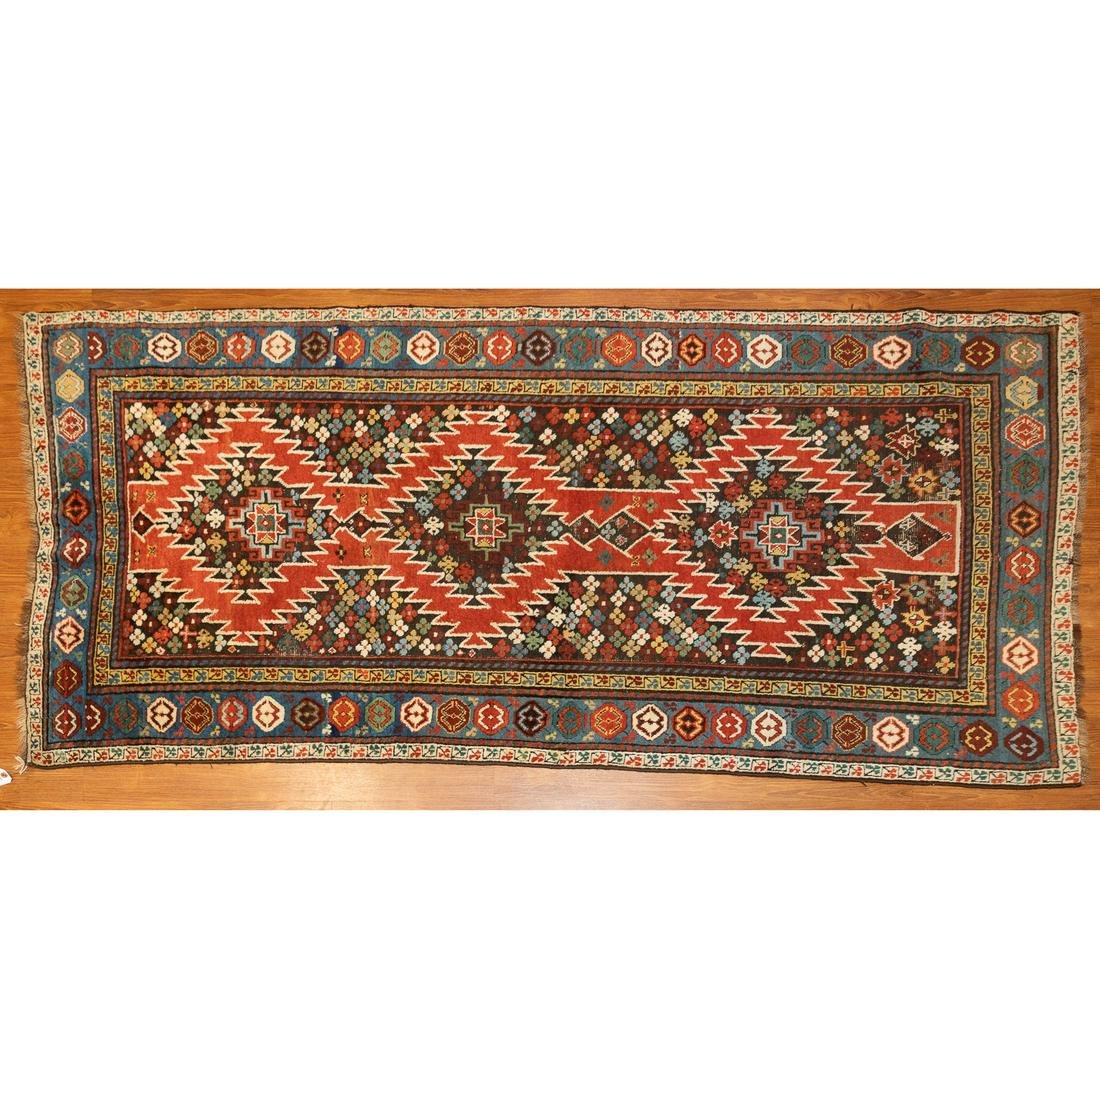 Antique Kuba Rug, Caucasus, 3.8 x 7.6